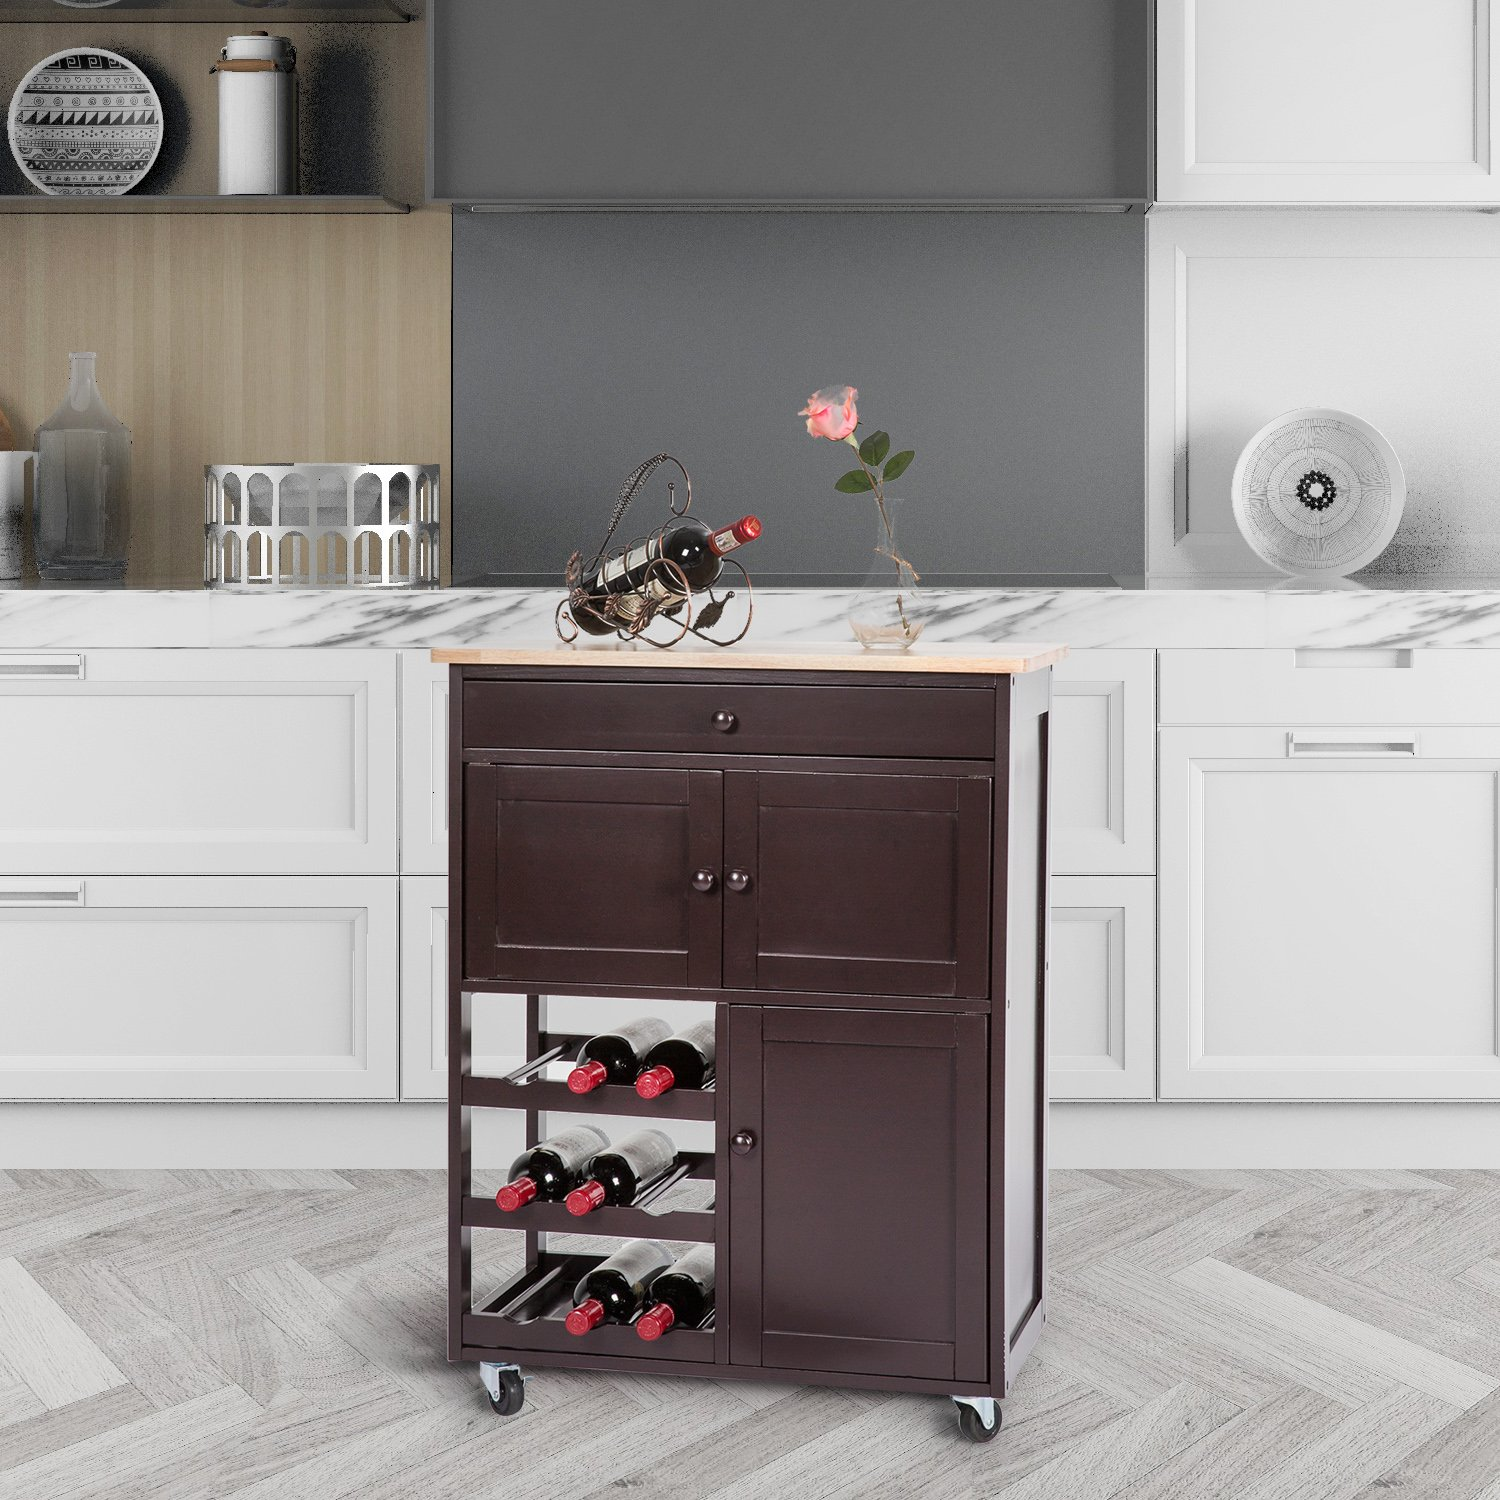 Peachtree Press Inc Multi-Purpose Wood Rolling Wood Kitchen Island Trolley Cart Bamboo Top Storage Cabinet Utility